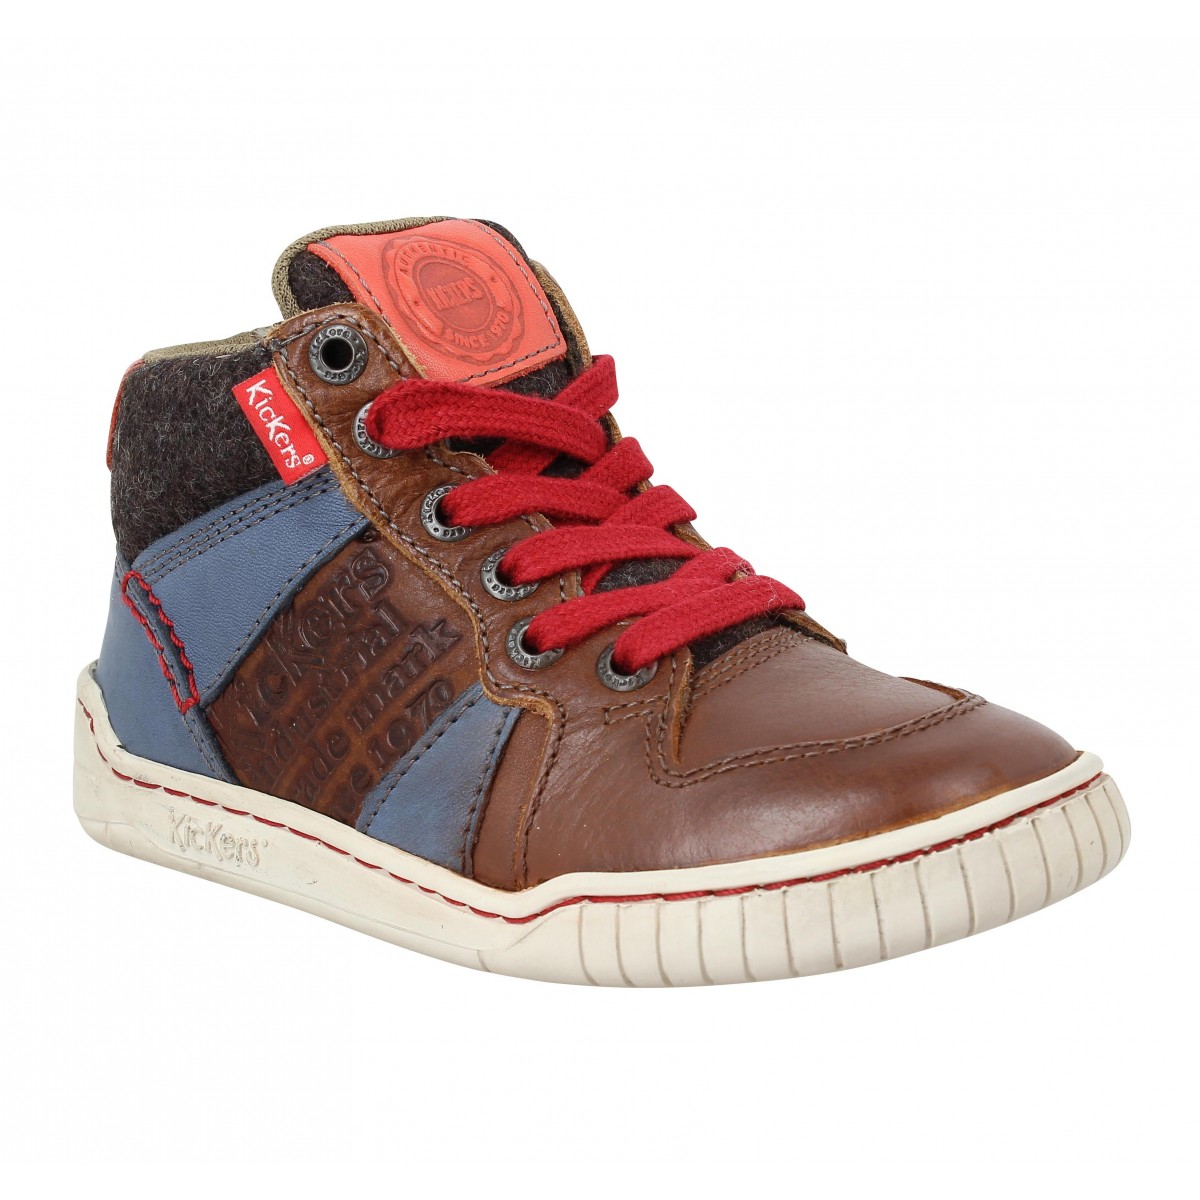 Baskets KICKERS Wazabi cuir Enfant Marron